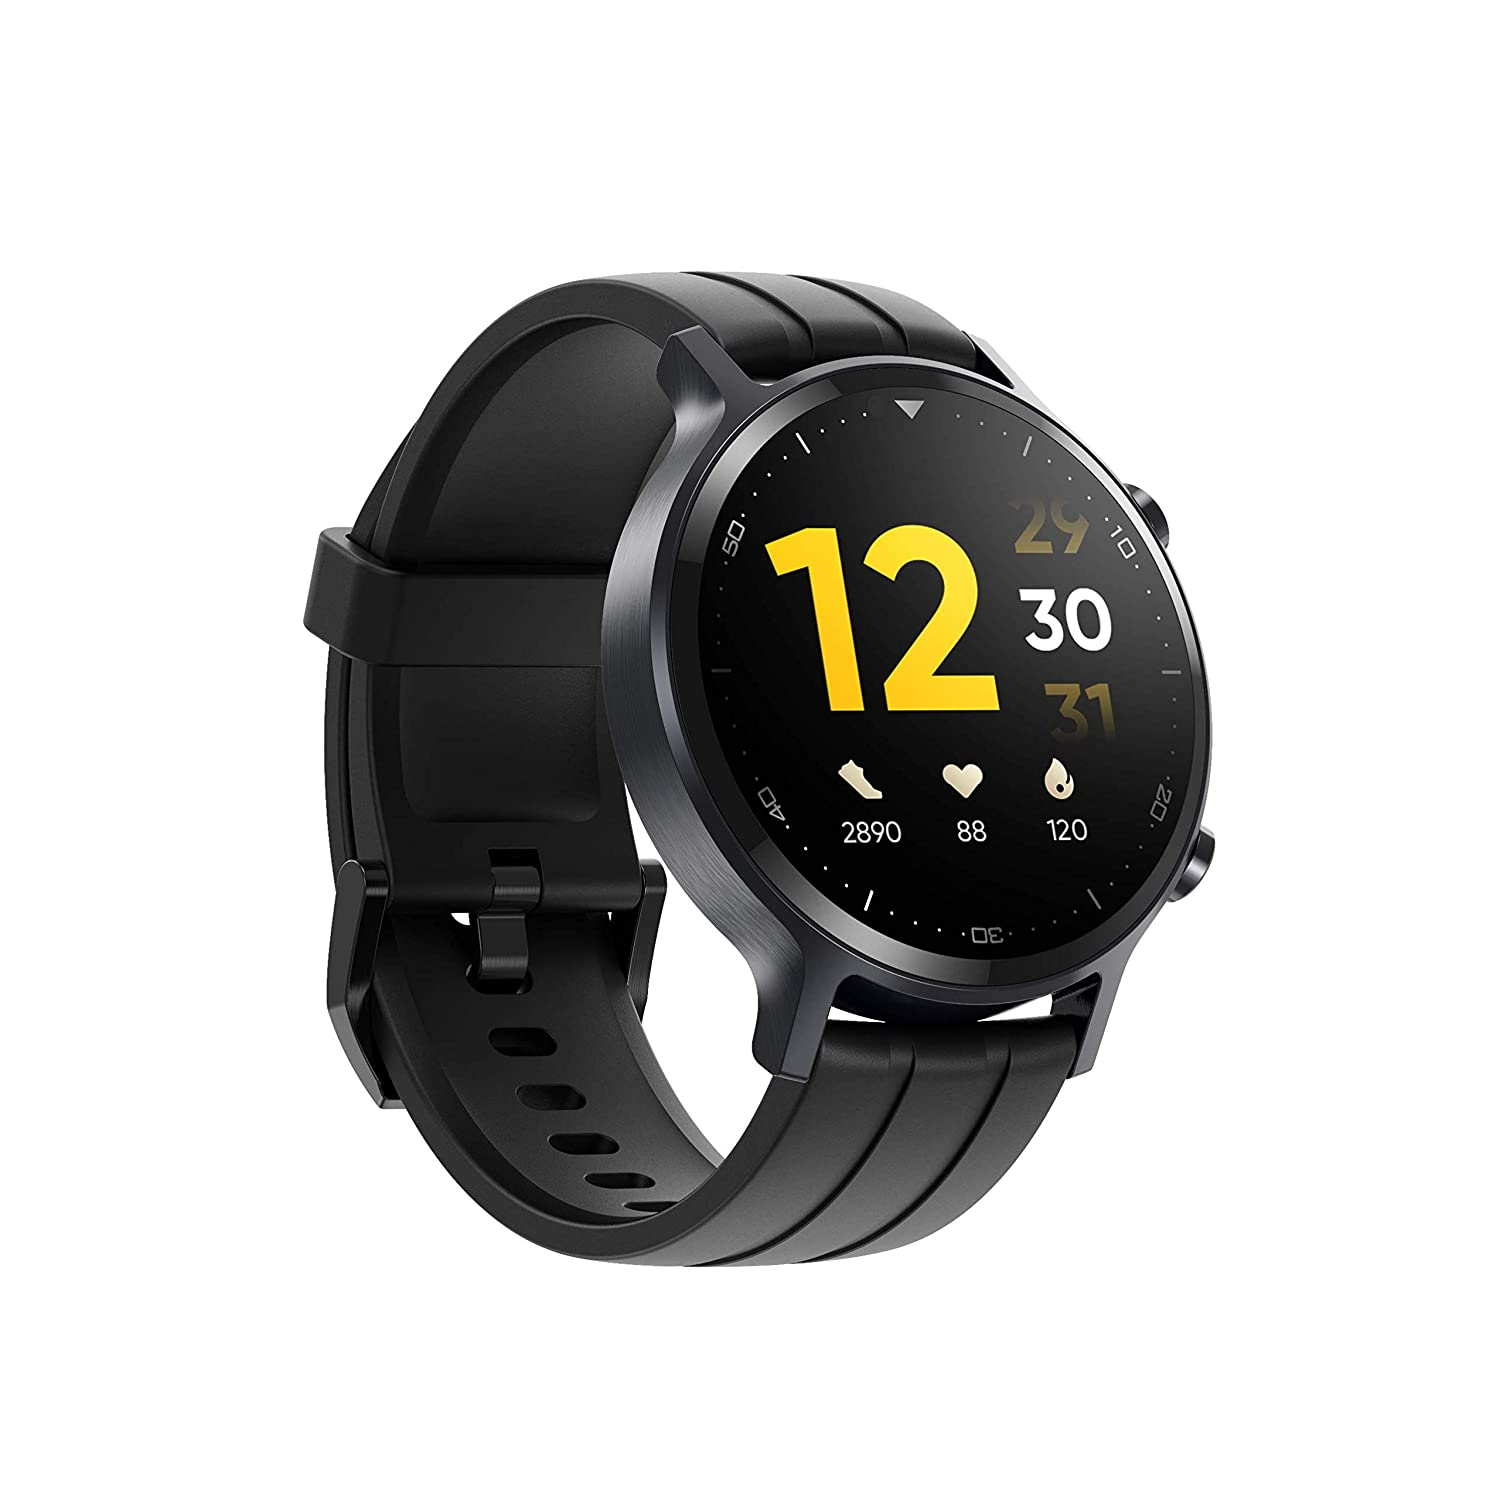 """realme Watch S with 1.3"""" TFT-LCD Touchscreen, 15 Days Battery Life, SpO2 & Heart Rate Monitoring, IP68 Water Resistance"""